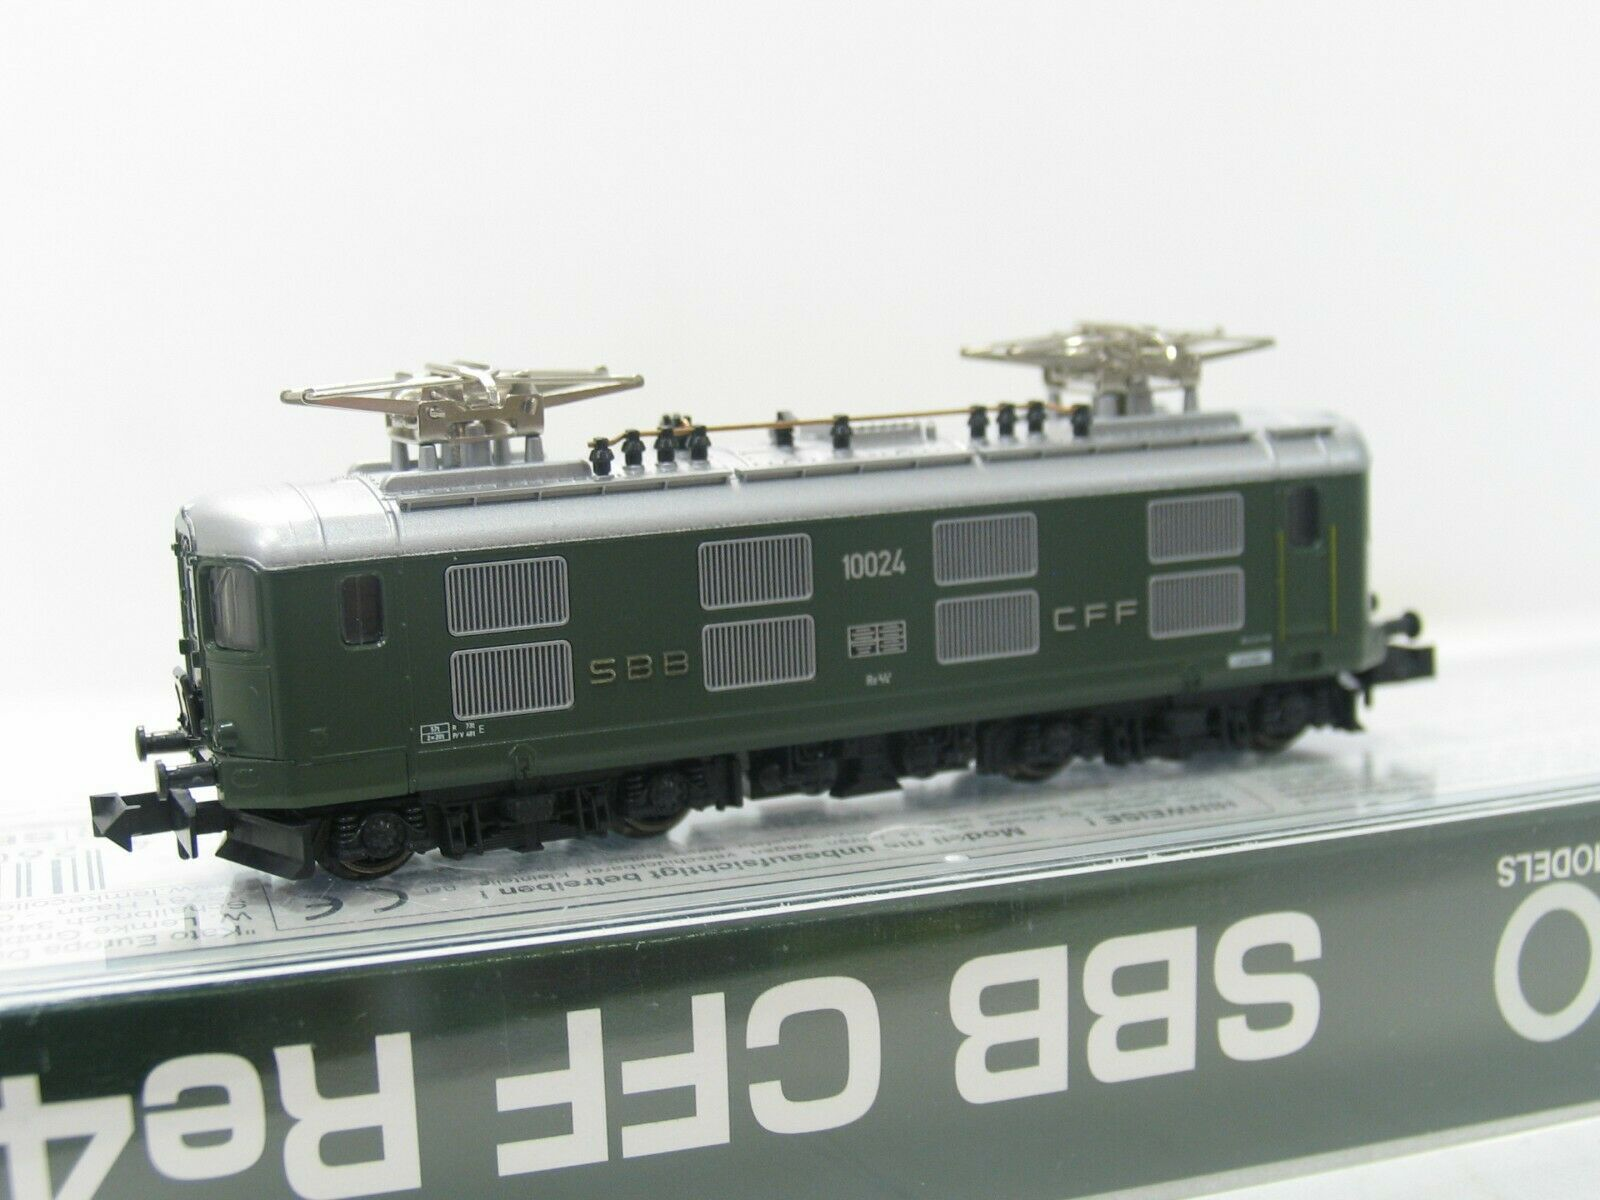 Kato 11603 E-Locomotive Series Re 4 4  10024  Green SBB NH214